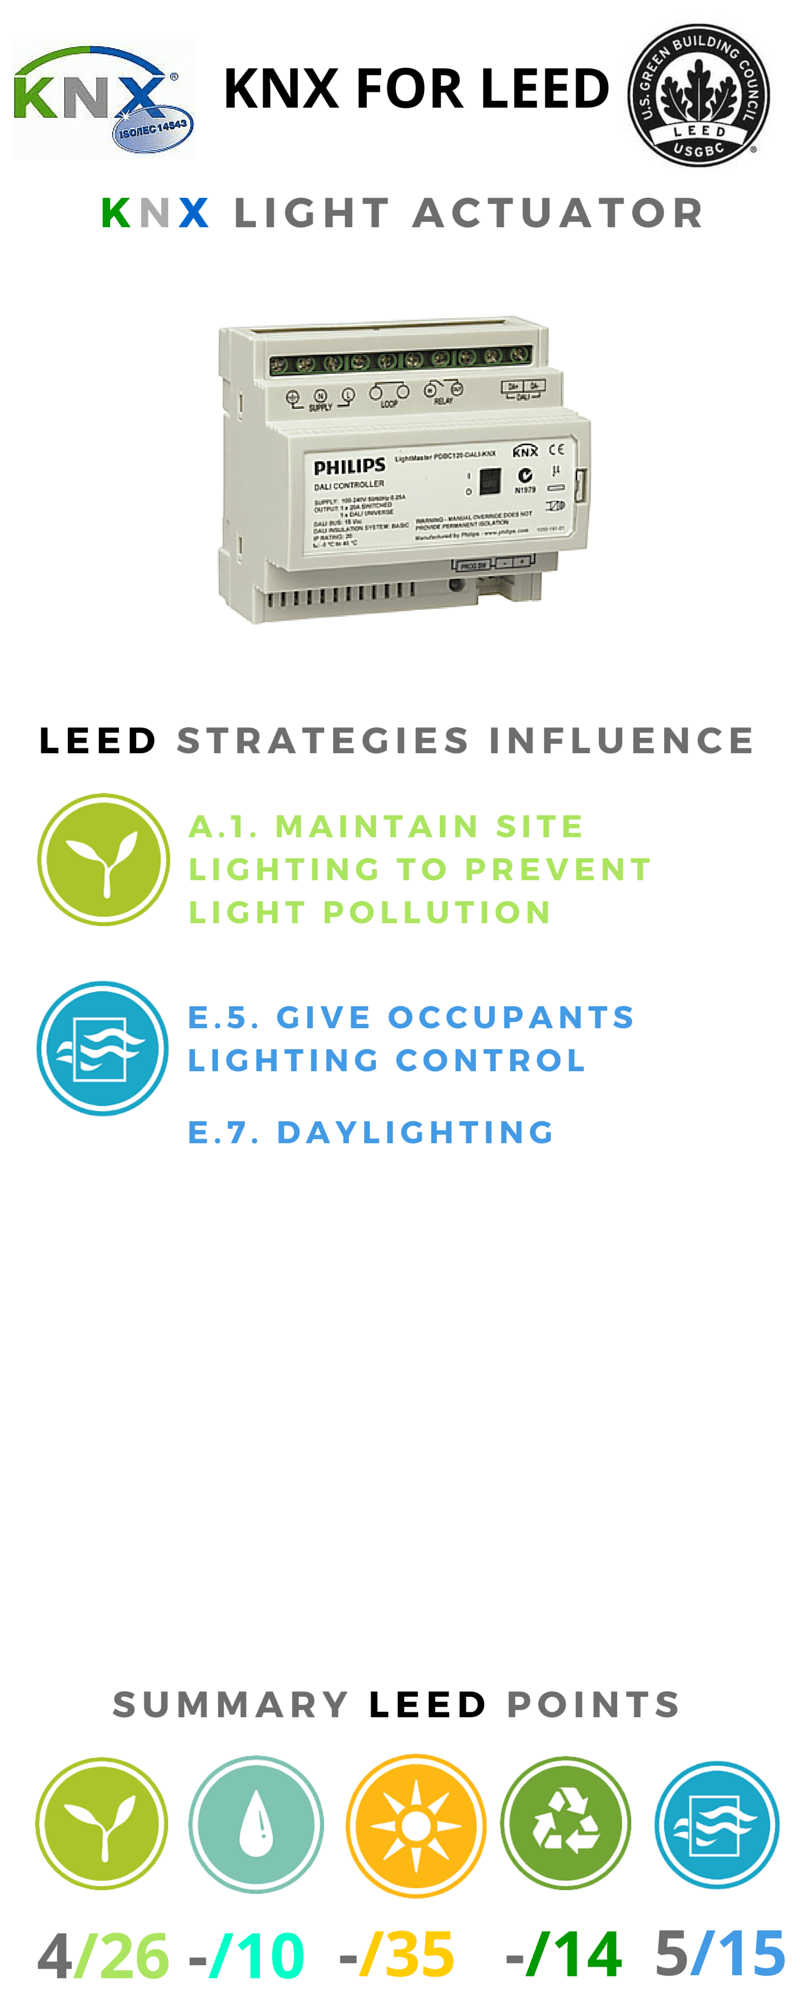 knx for leed light actuator inphography 2